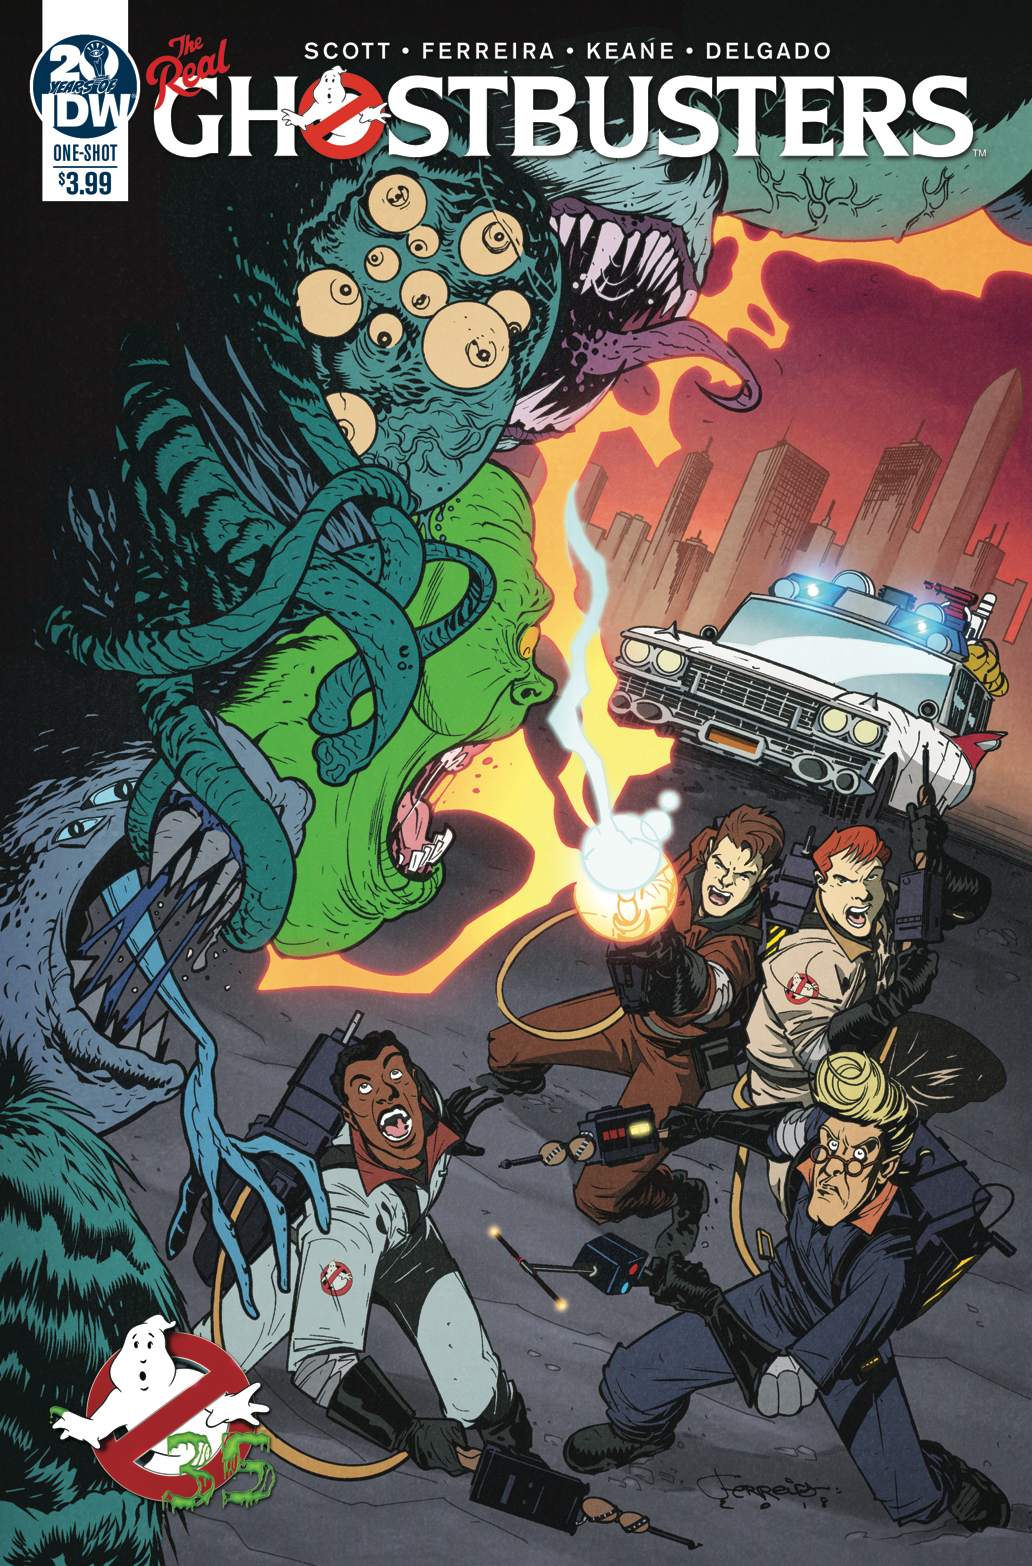 GHOSTBUSTERS 35TH ANNIV REAL GHOSTBUSTERS FERREIRA